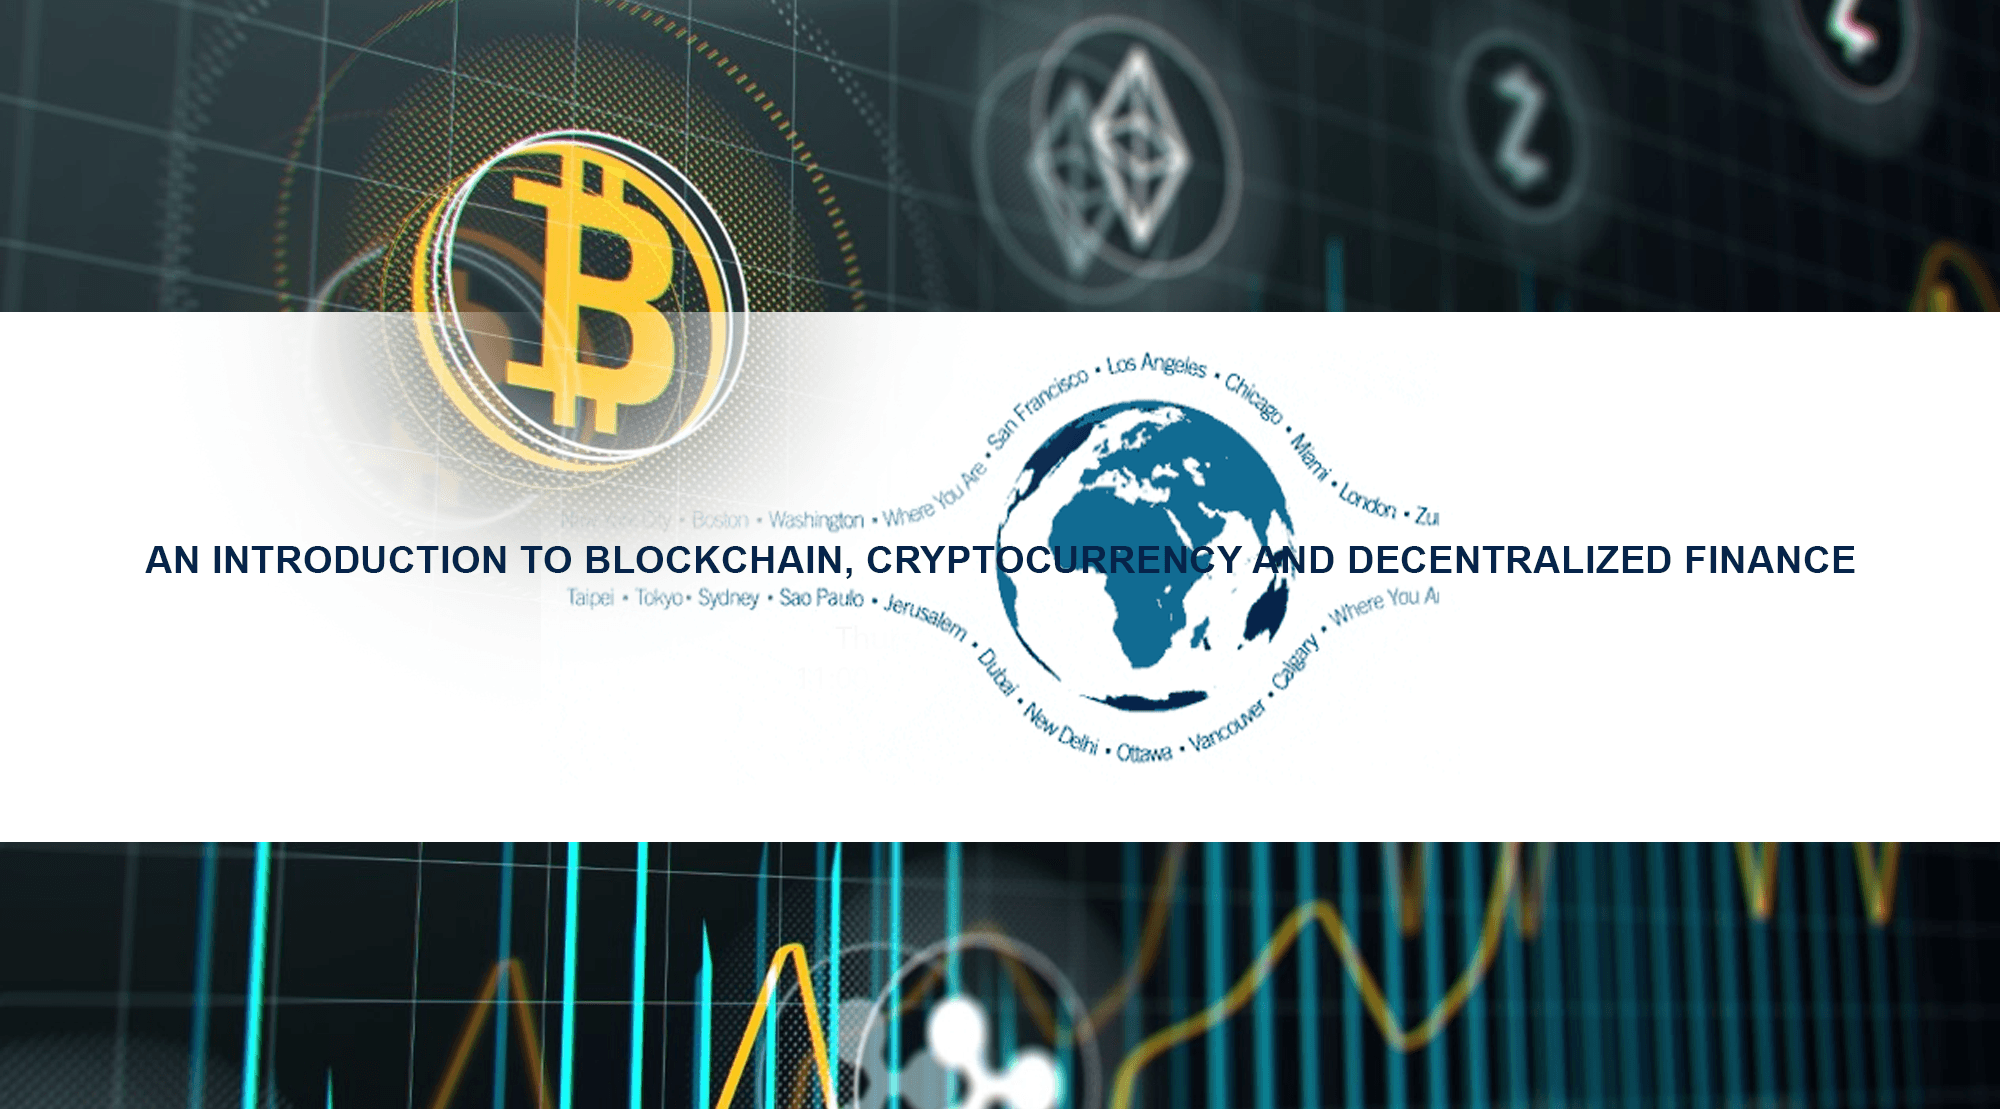 AN INTRODUCTION TO BLOCKCHAIN, CRYPTOCURRENCY AND DECENTRALIZED FINANCE